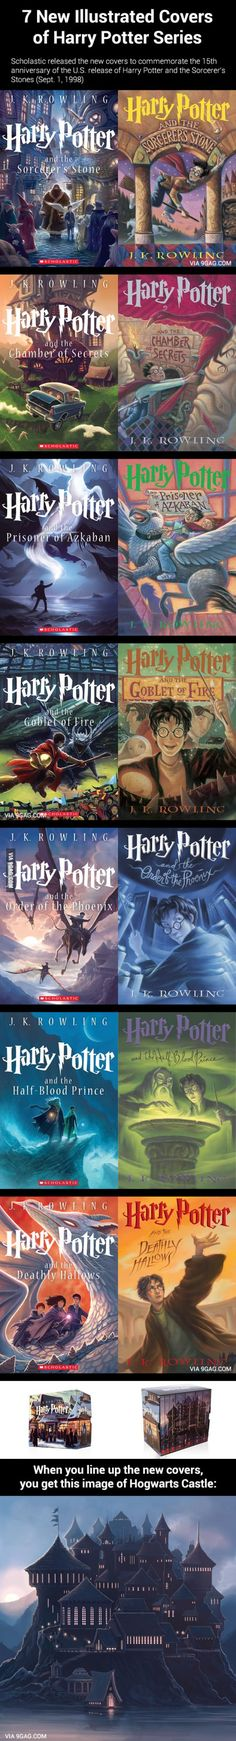 """Harry Potter"" Gets Seven New Illustrated Covers"